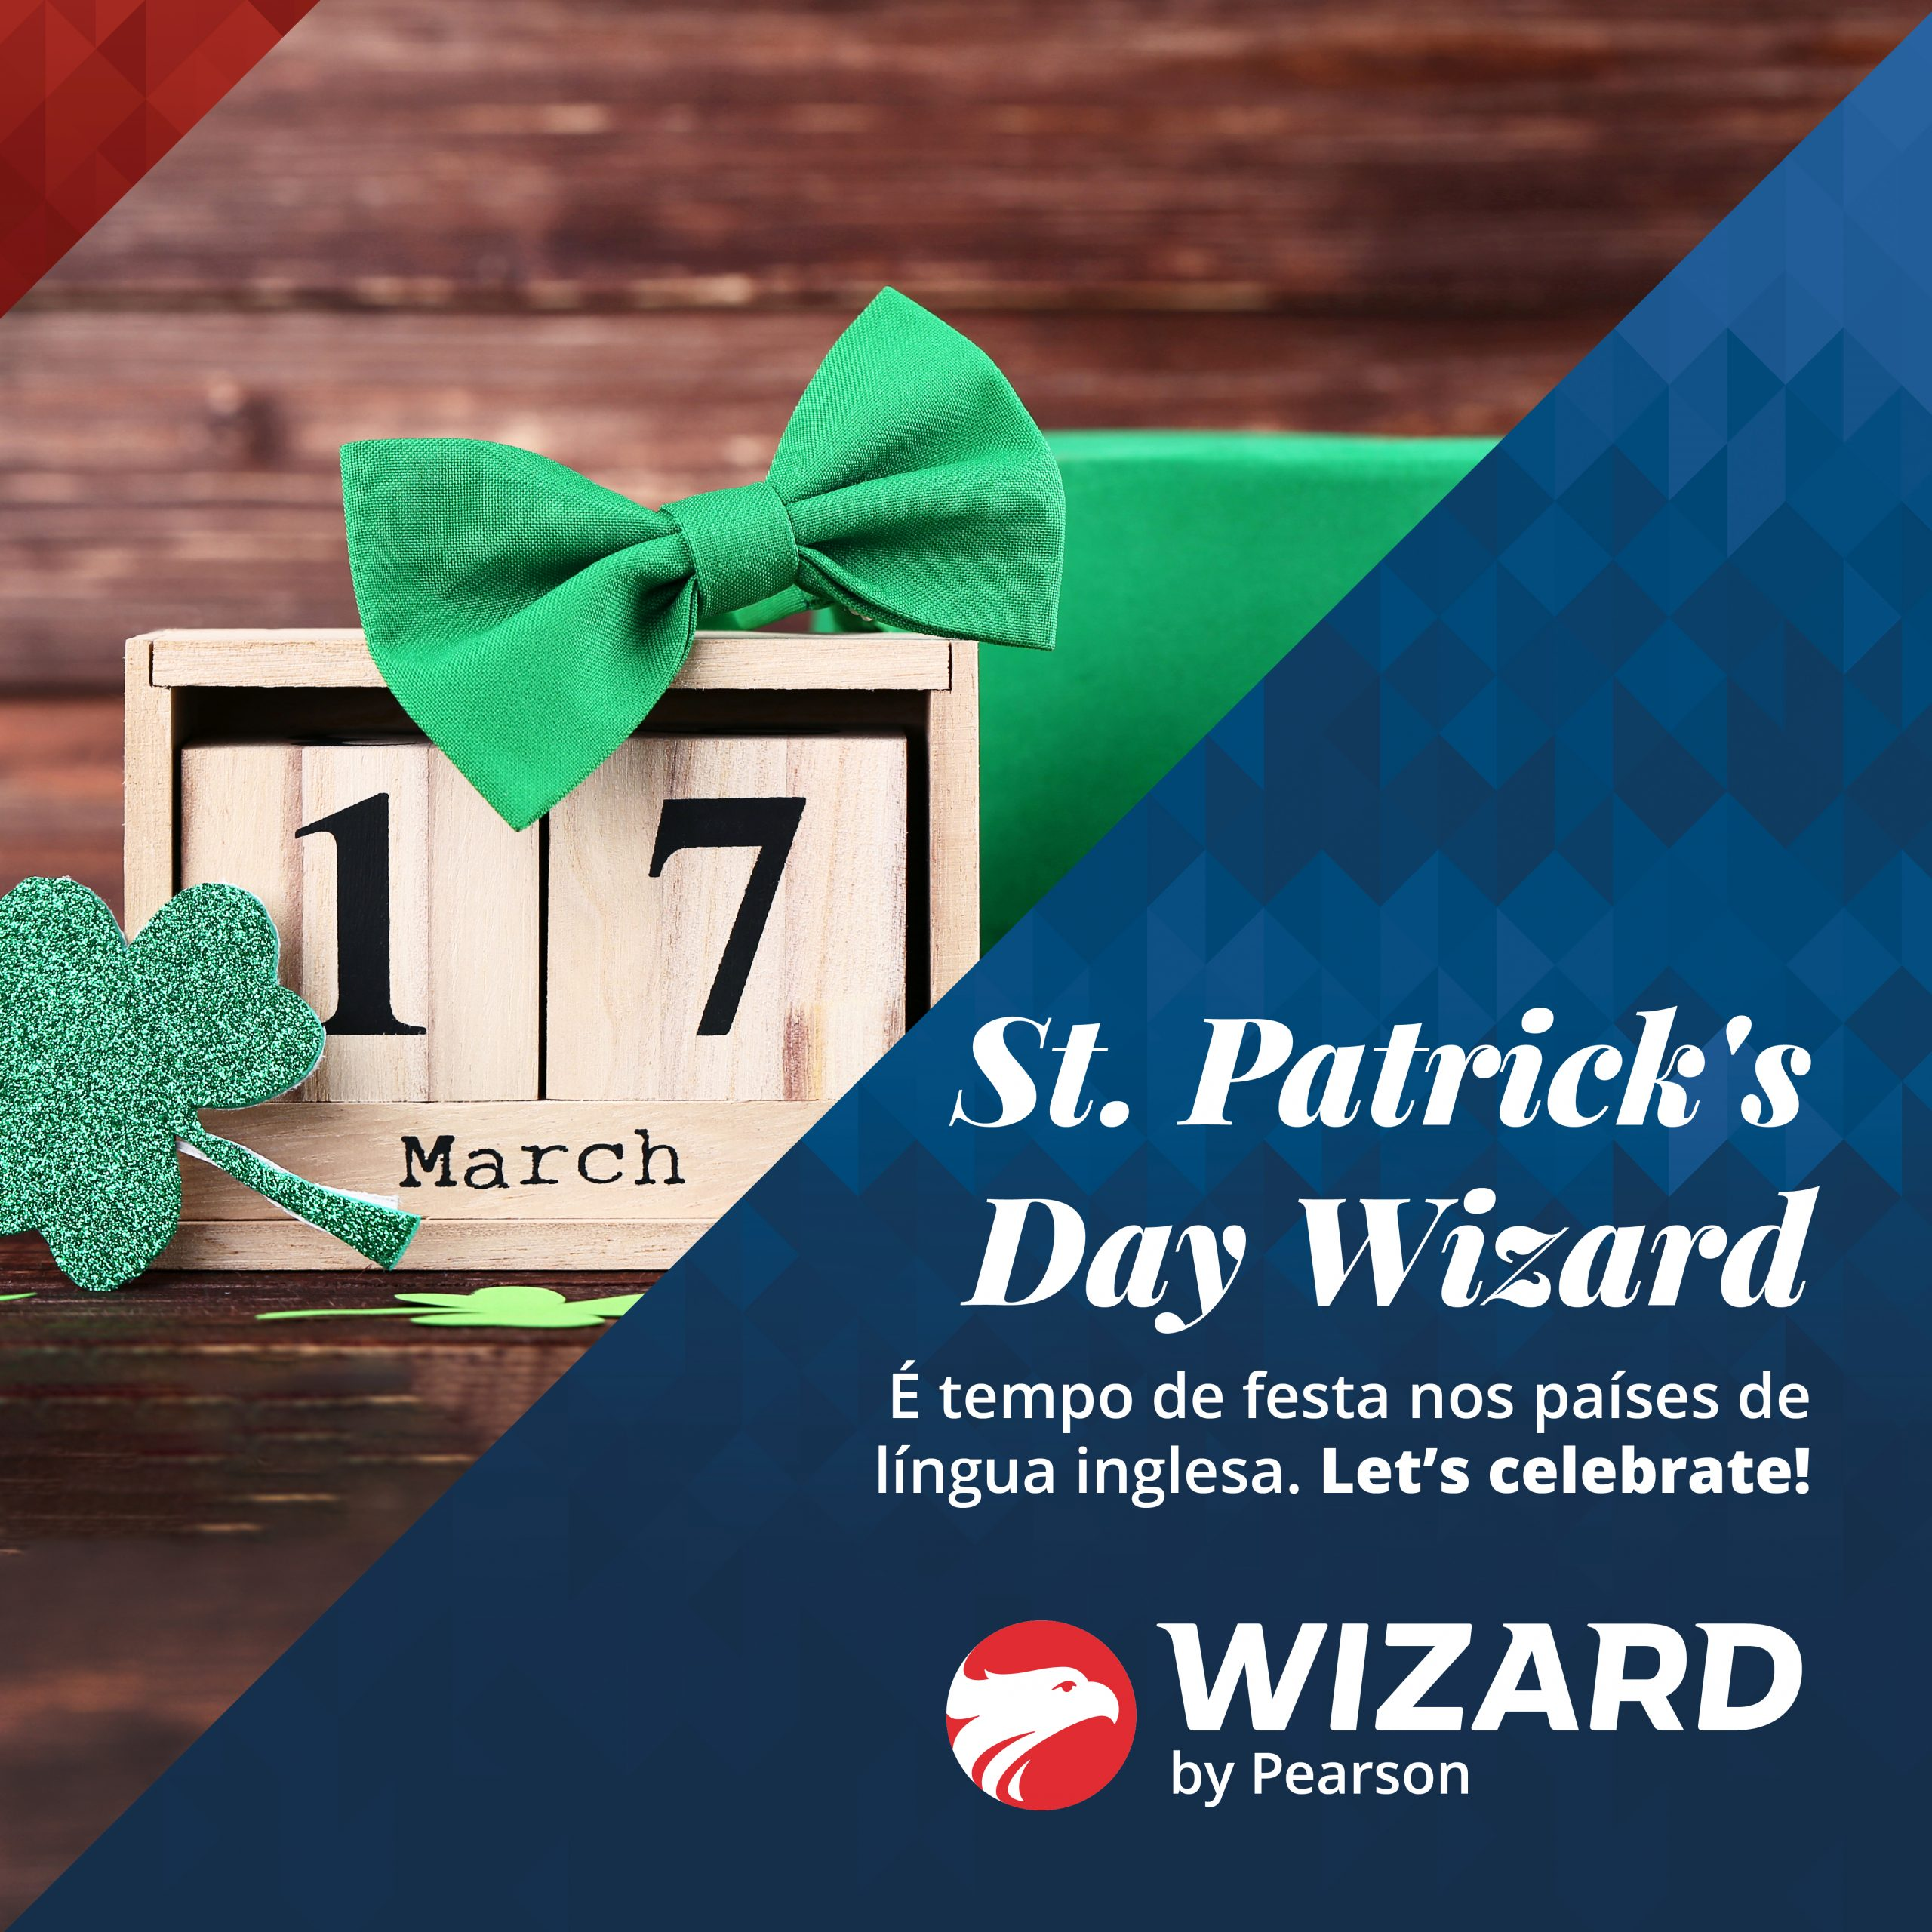 Saint Patricks day Wizard